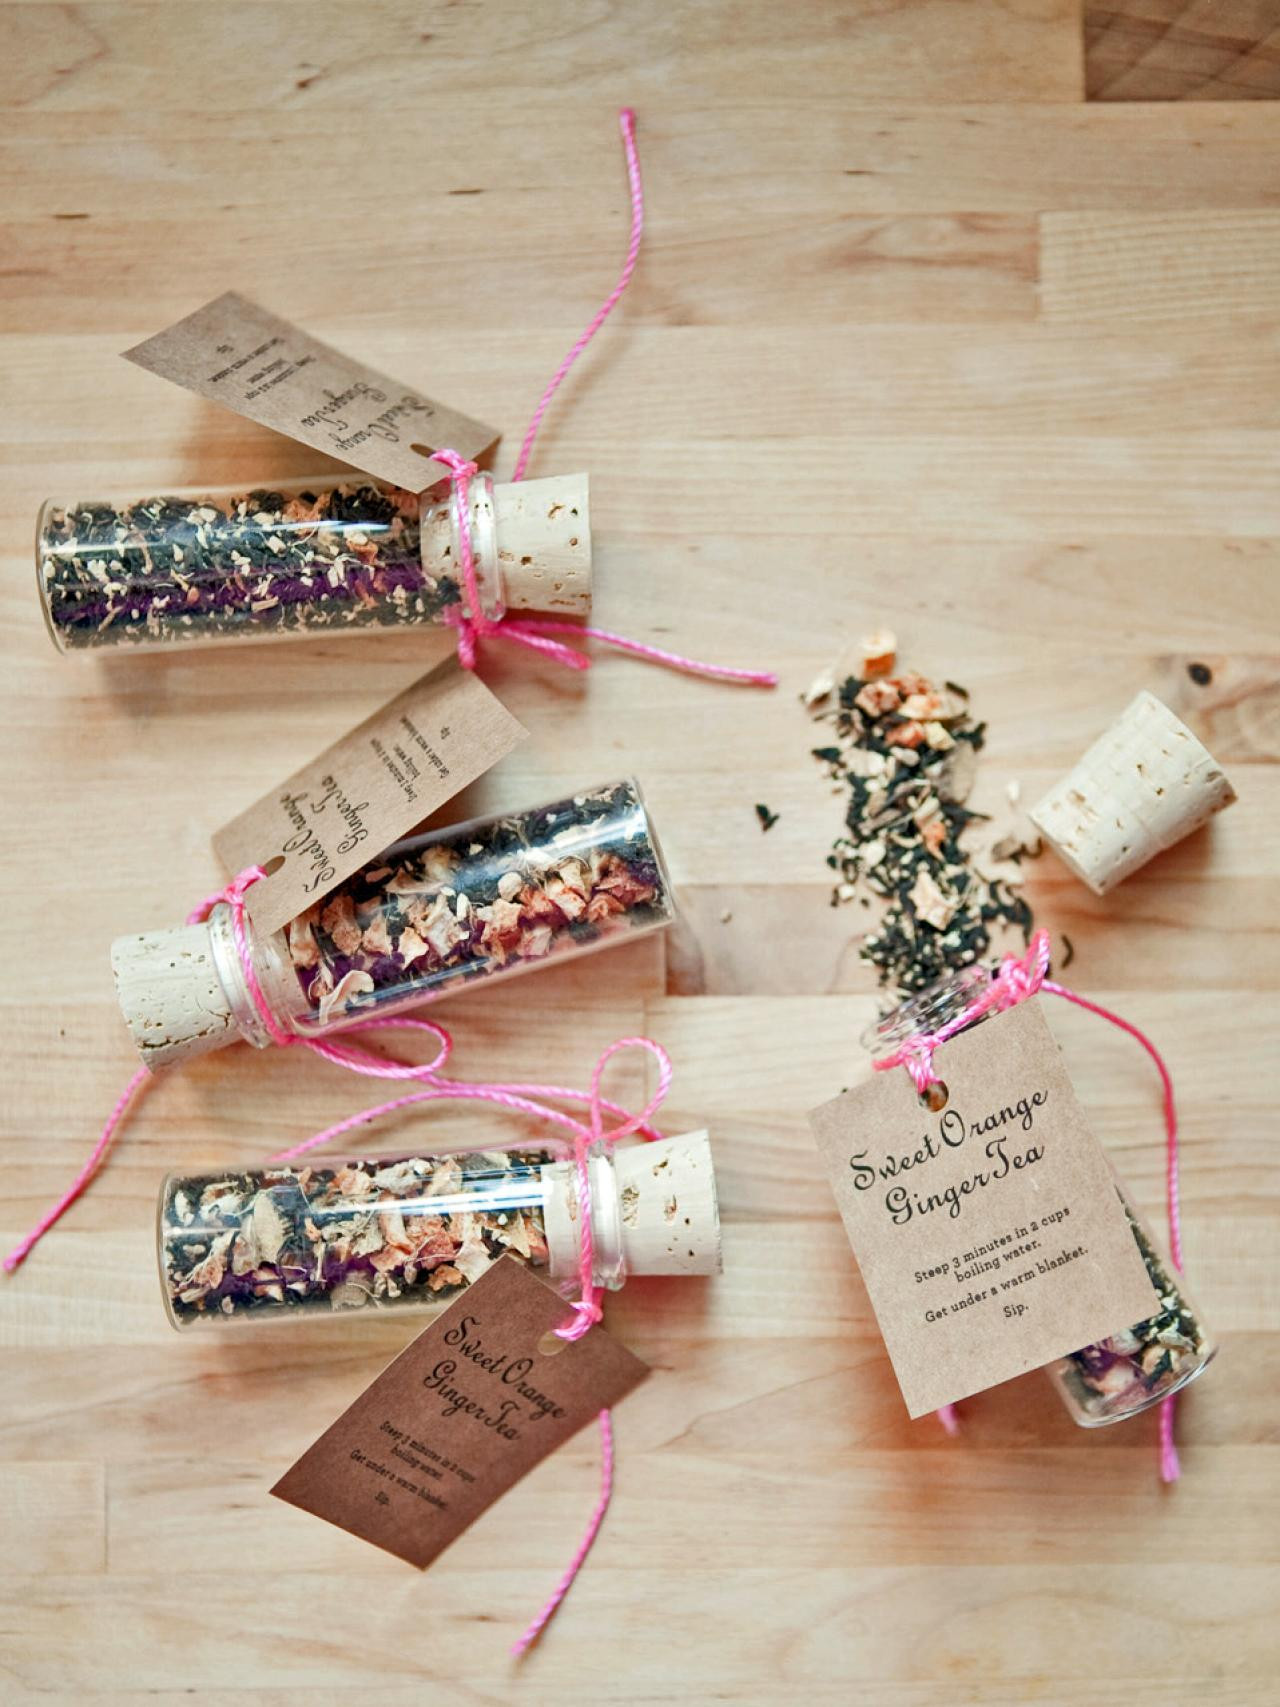 Best ideas about Holiday Party Gift Ideas . Save or Pin 30 Festive DIY Holiday Party Favors Now.